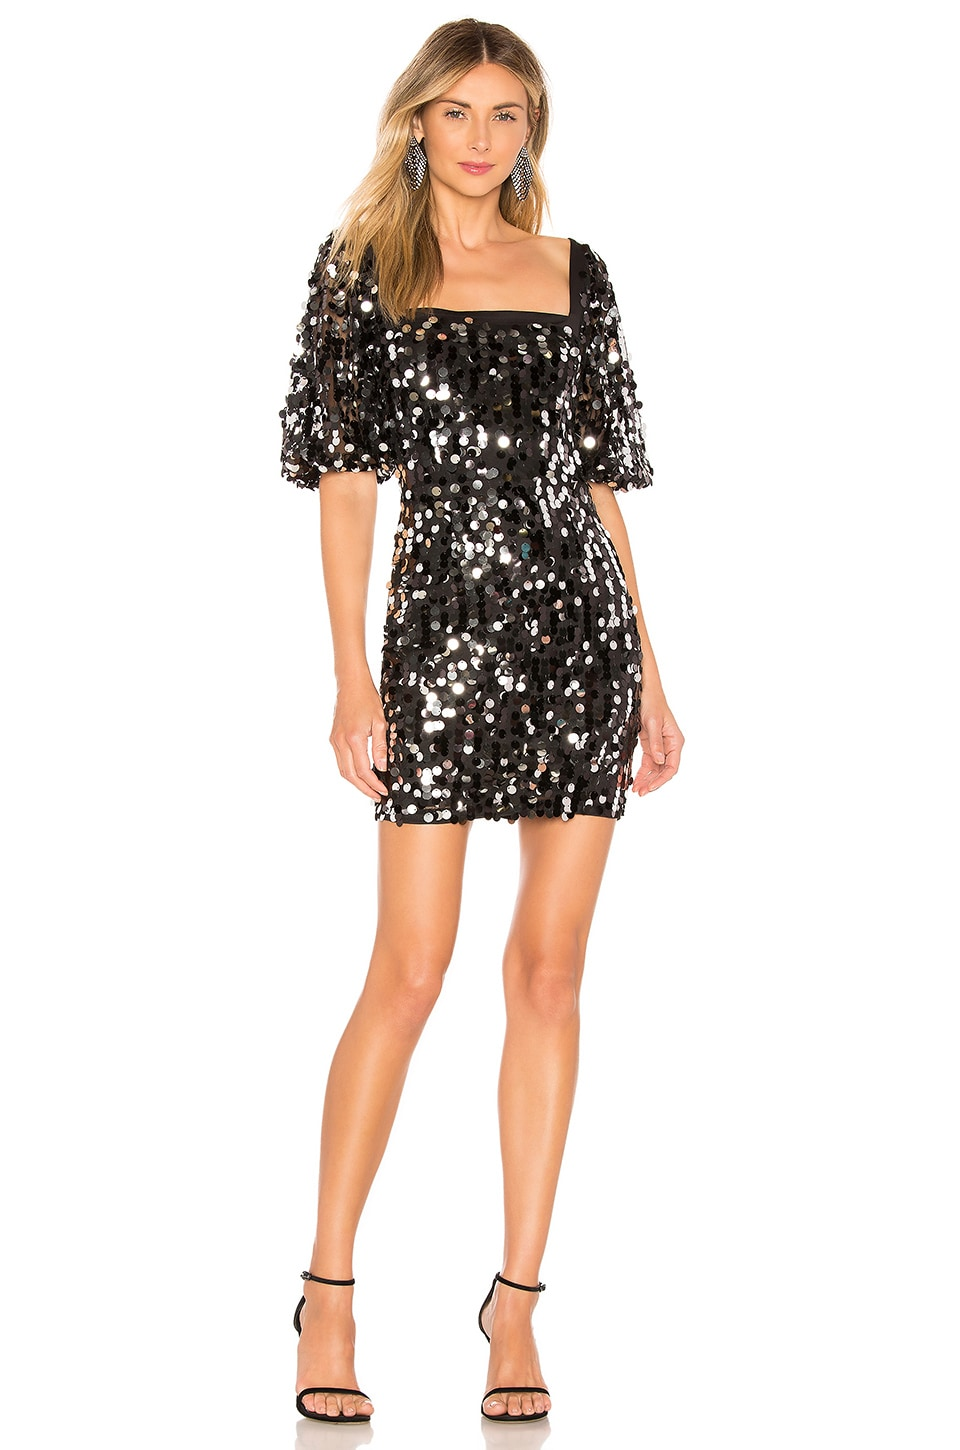 h:ours Gael Mini Dress in Black Galaxy